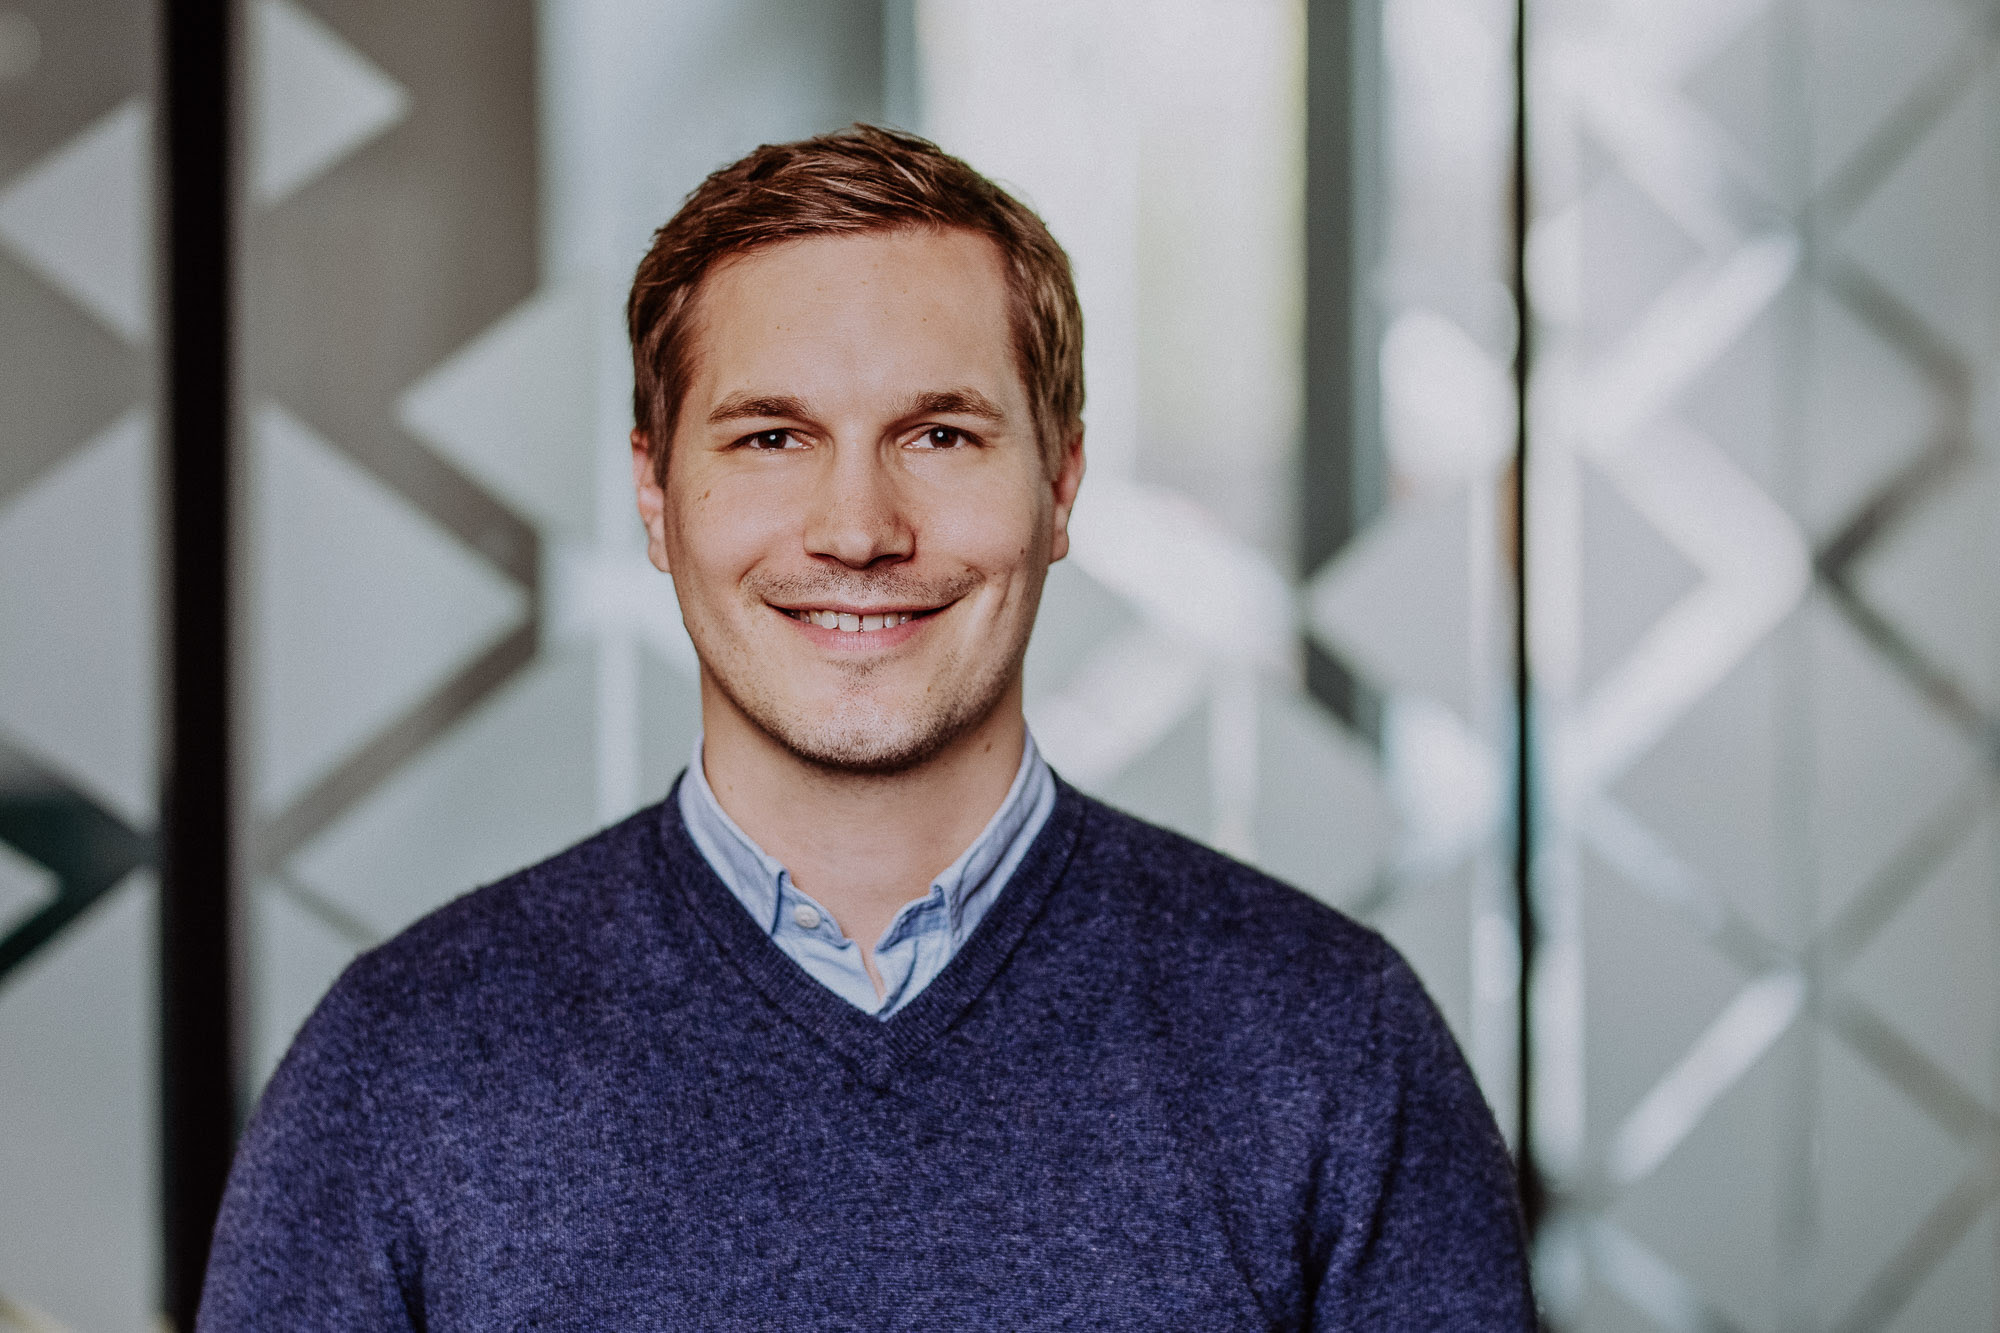 Dr. Til Rochow, Head of Investment Products at Raisin:WeltSparen